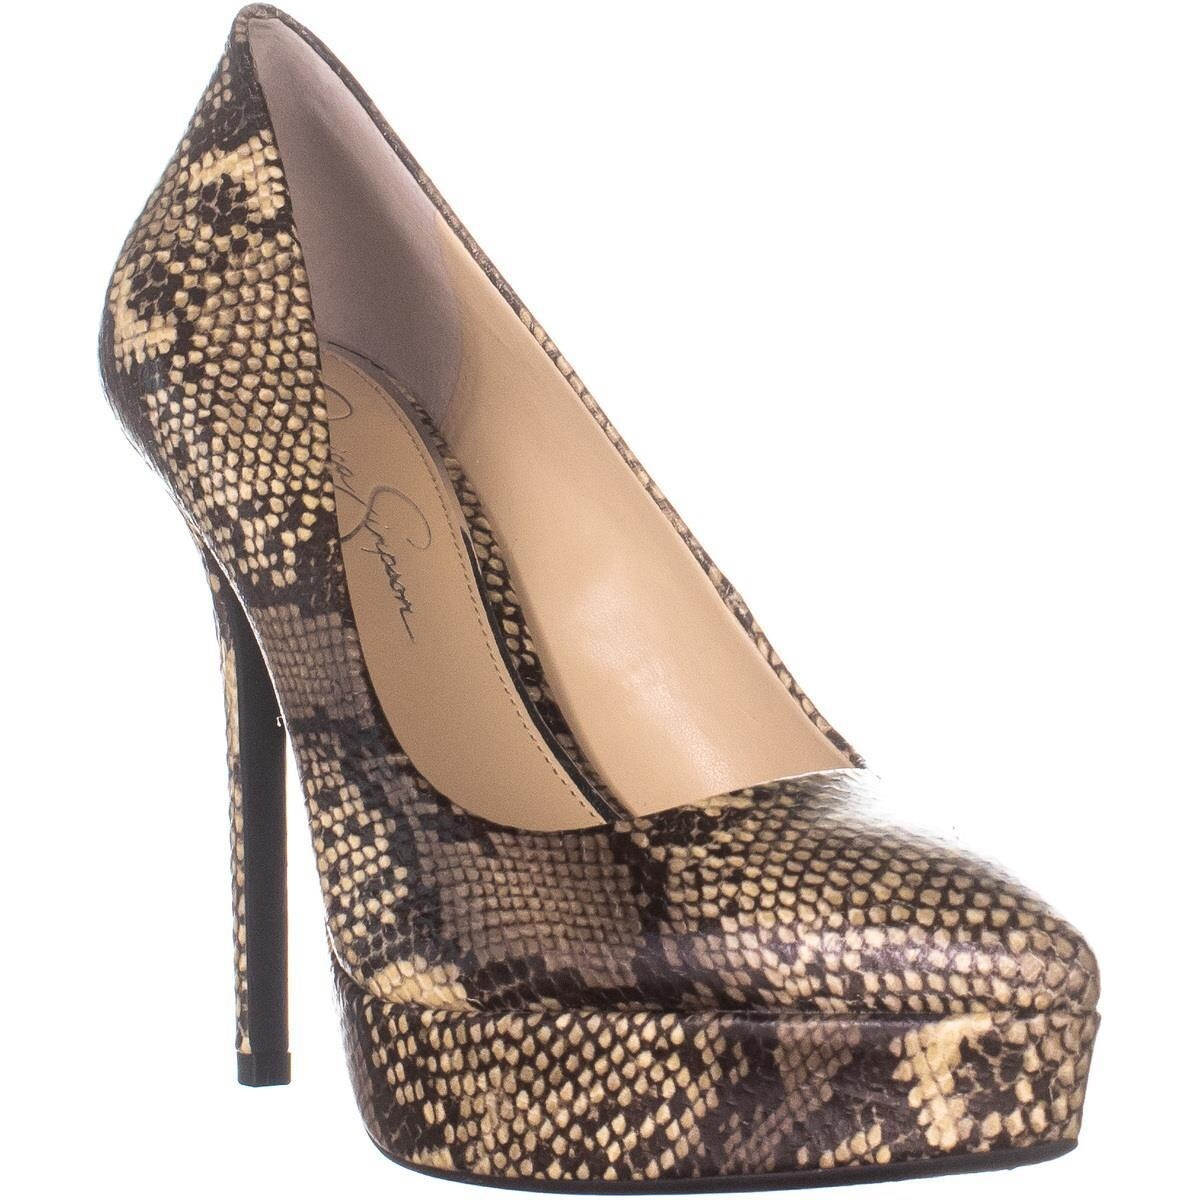 99a2f3aef8 New Products - Jessica Simpson Shoes | Shop our Best Clothing & Shoes Deals  Online at Overstock